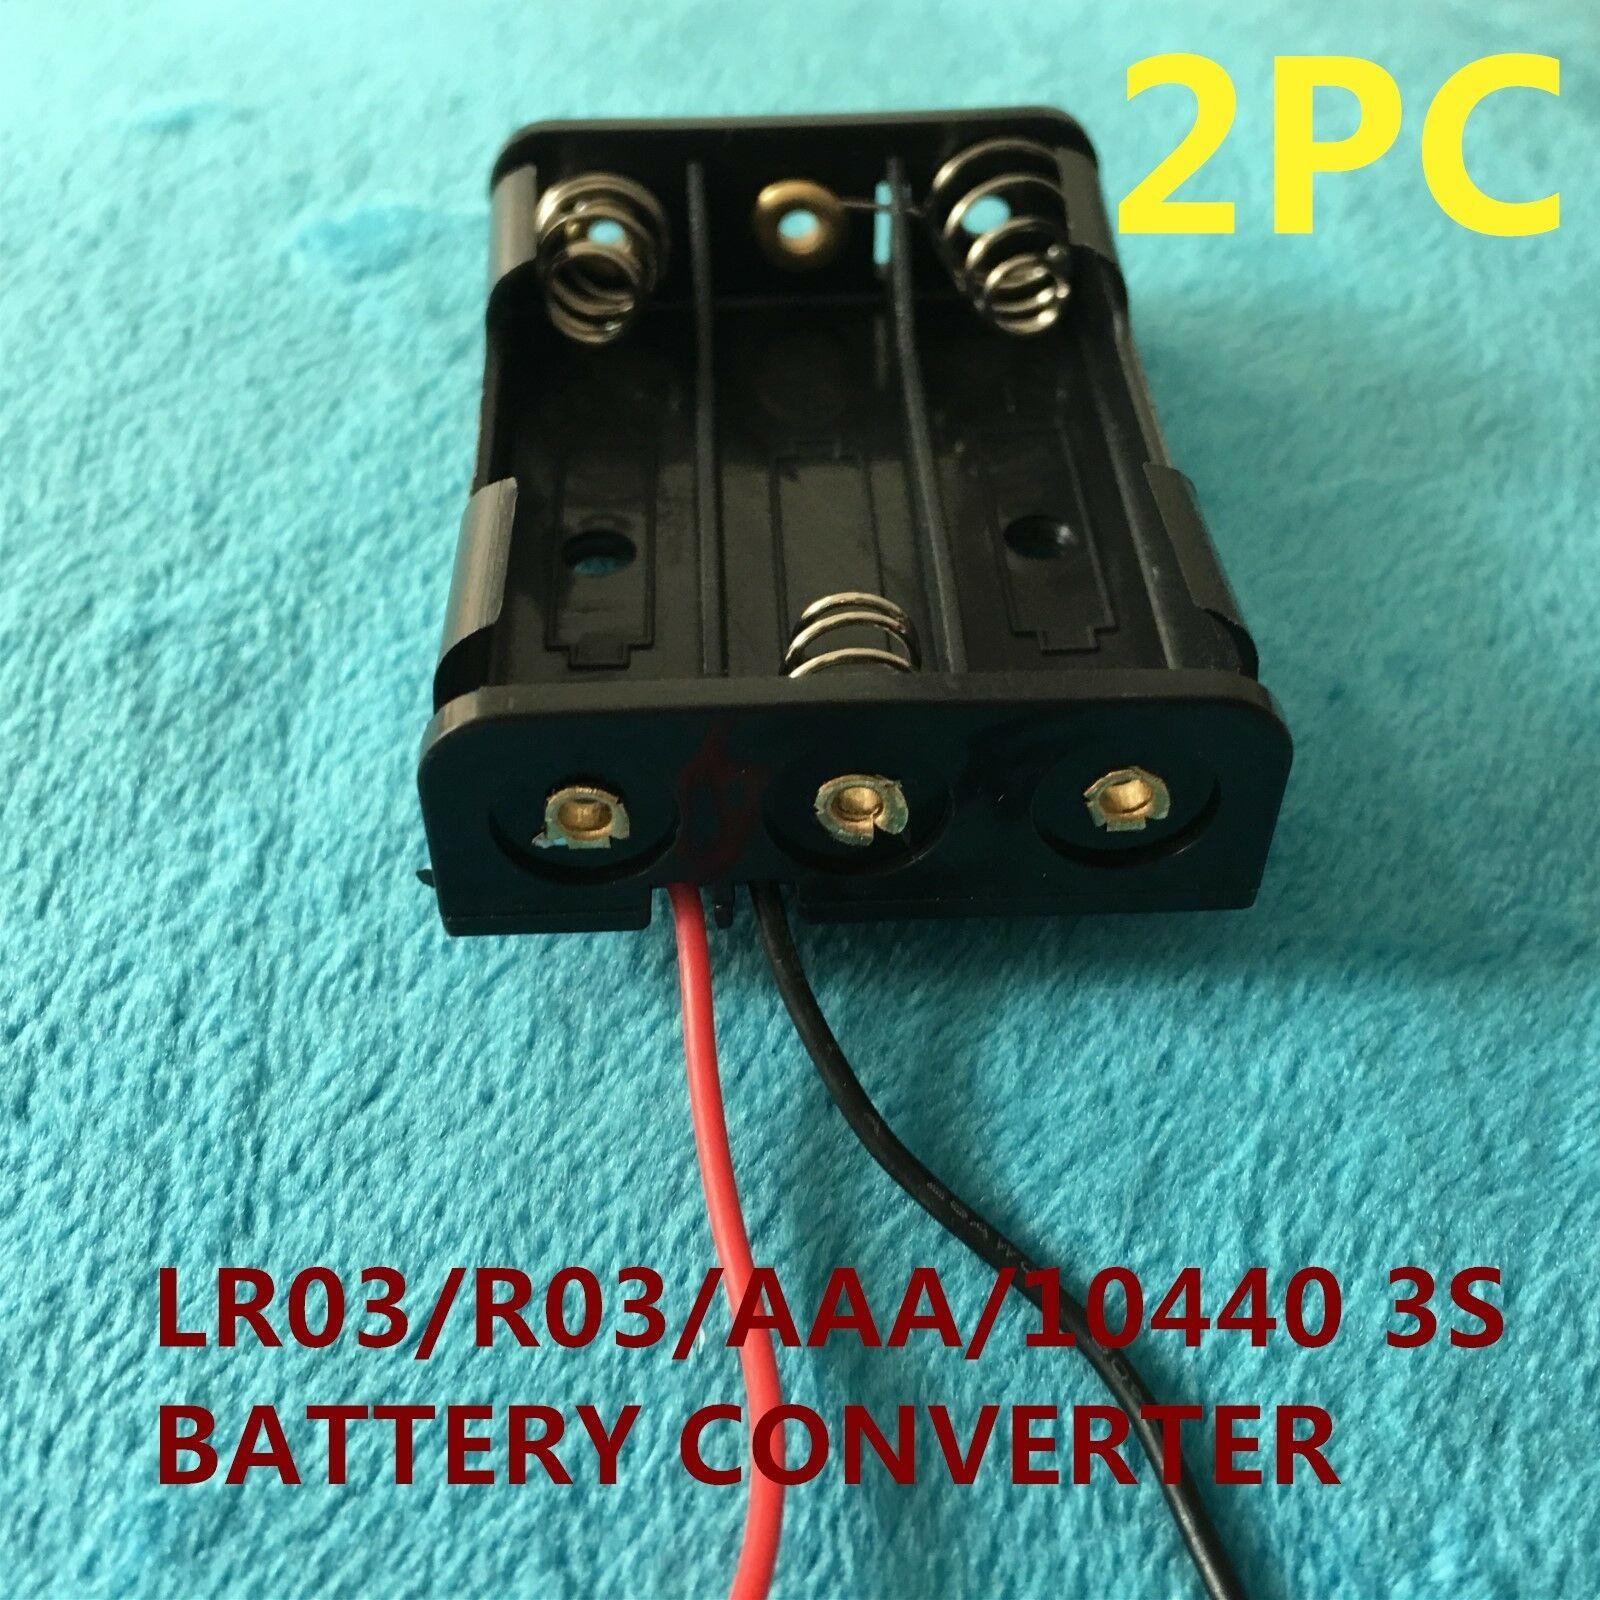 2PC THREE slot clip plastic connector holder for LR03 R03 AAA 10440 DRY BATTERY